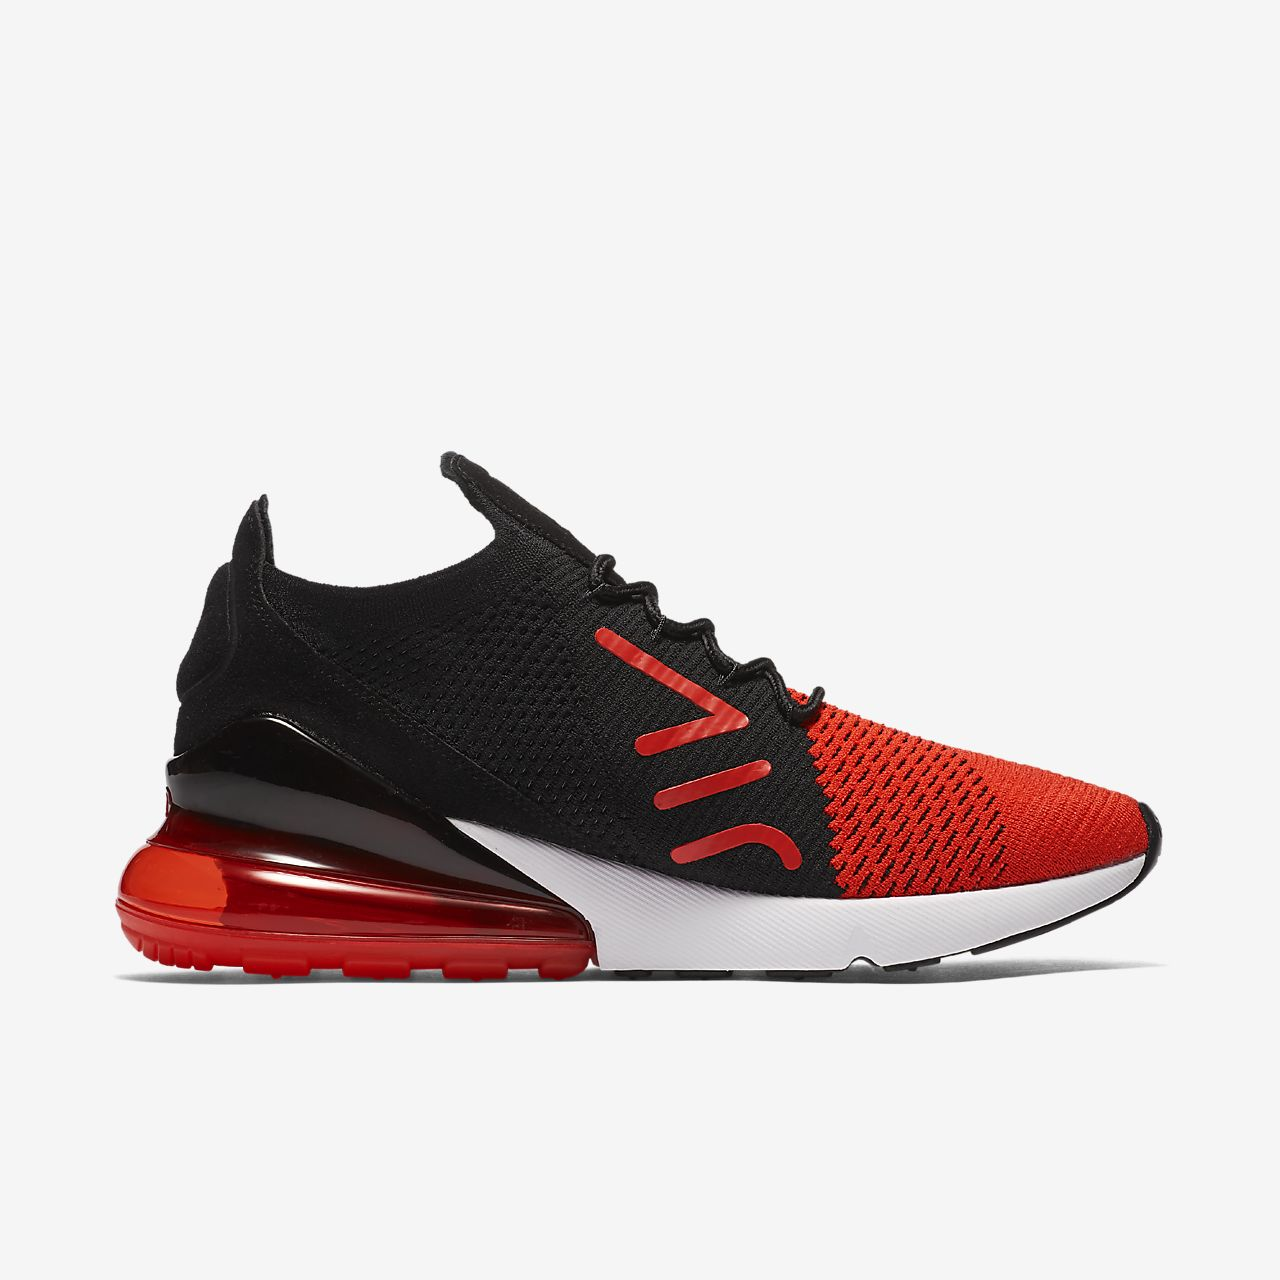 f3a37350386 Nike Air Max 270 Flyknit Men s Shoe. Nike.com